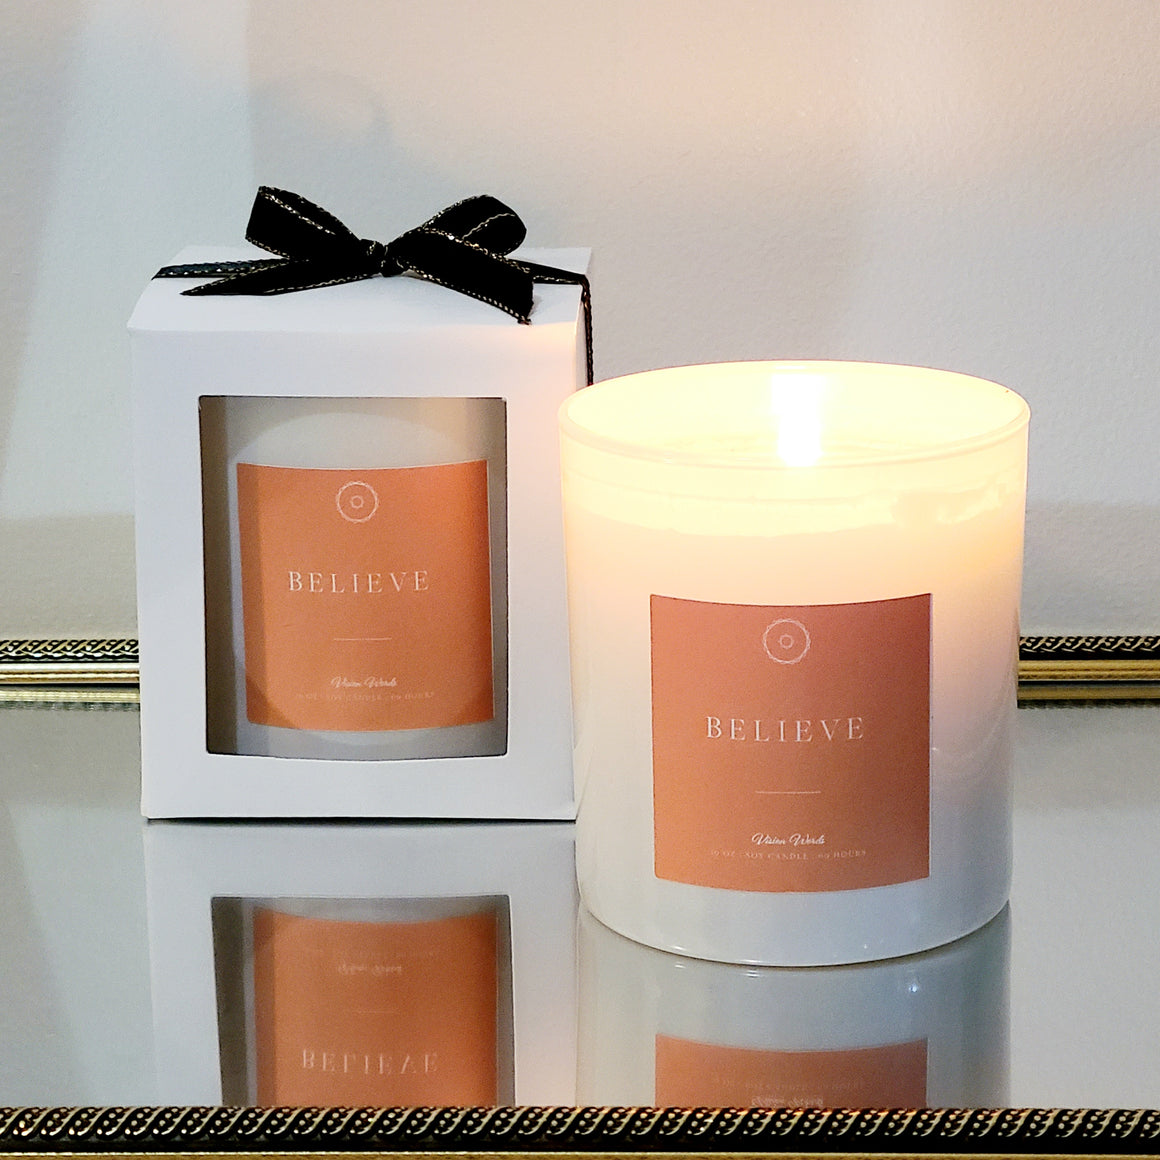 BELIEVE 10 oz Luxury Soy Candle